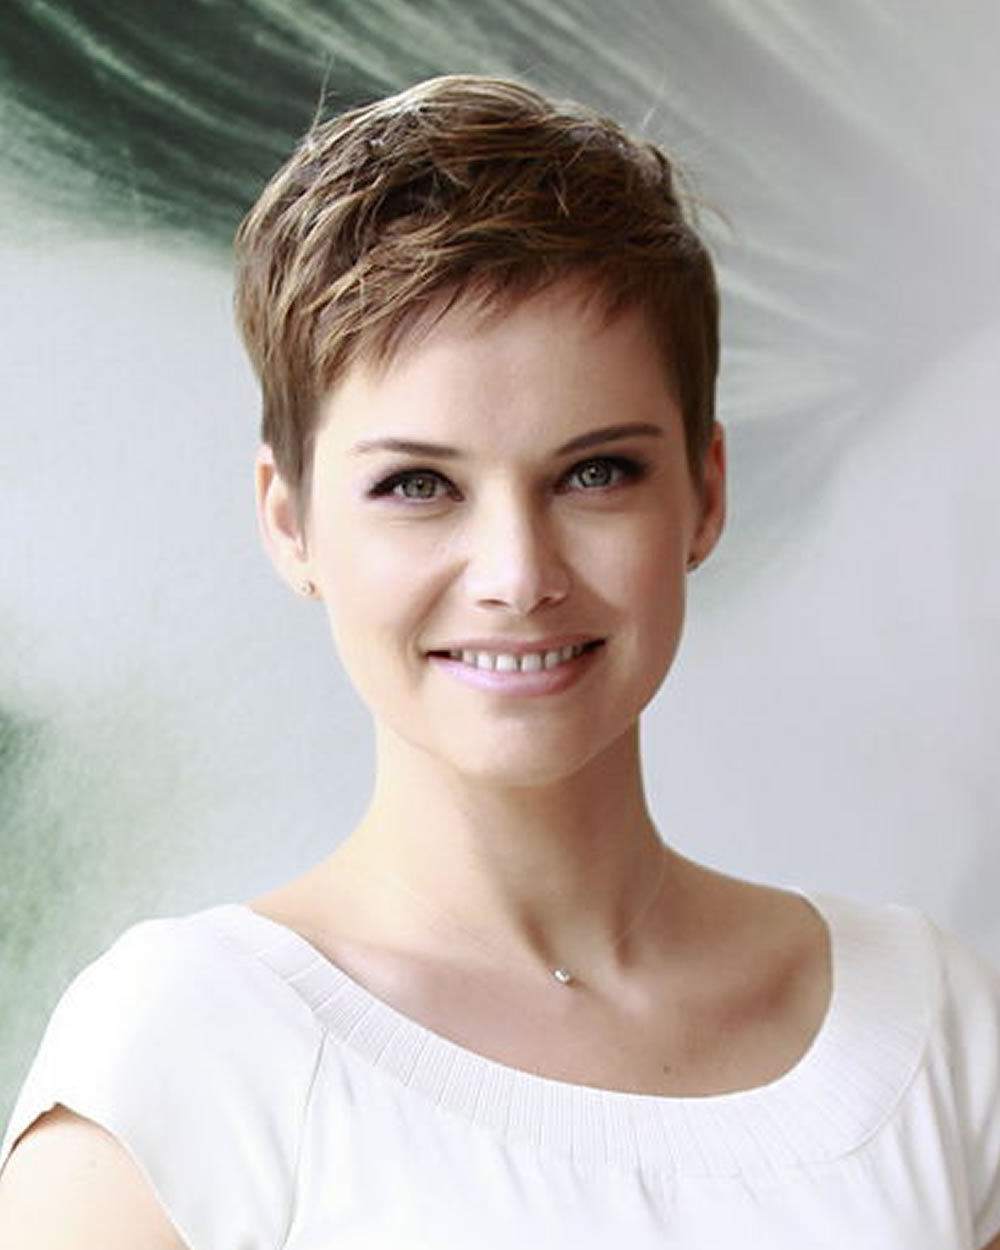 21 Trendy Short Haircut Images And Pixie Hairstyles You'll Really In Trendy Short Hairstyles (View 3 of 25)